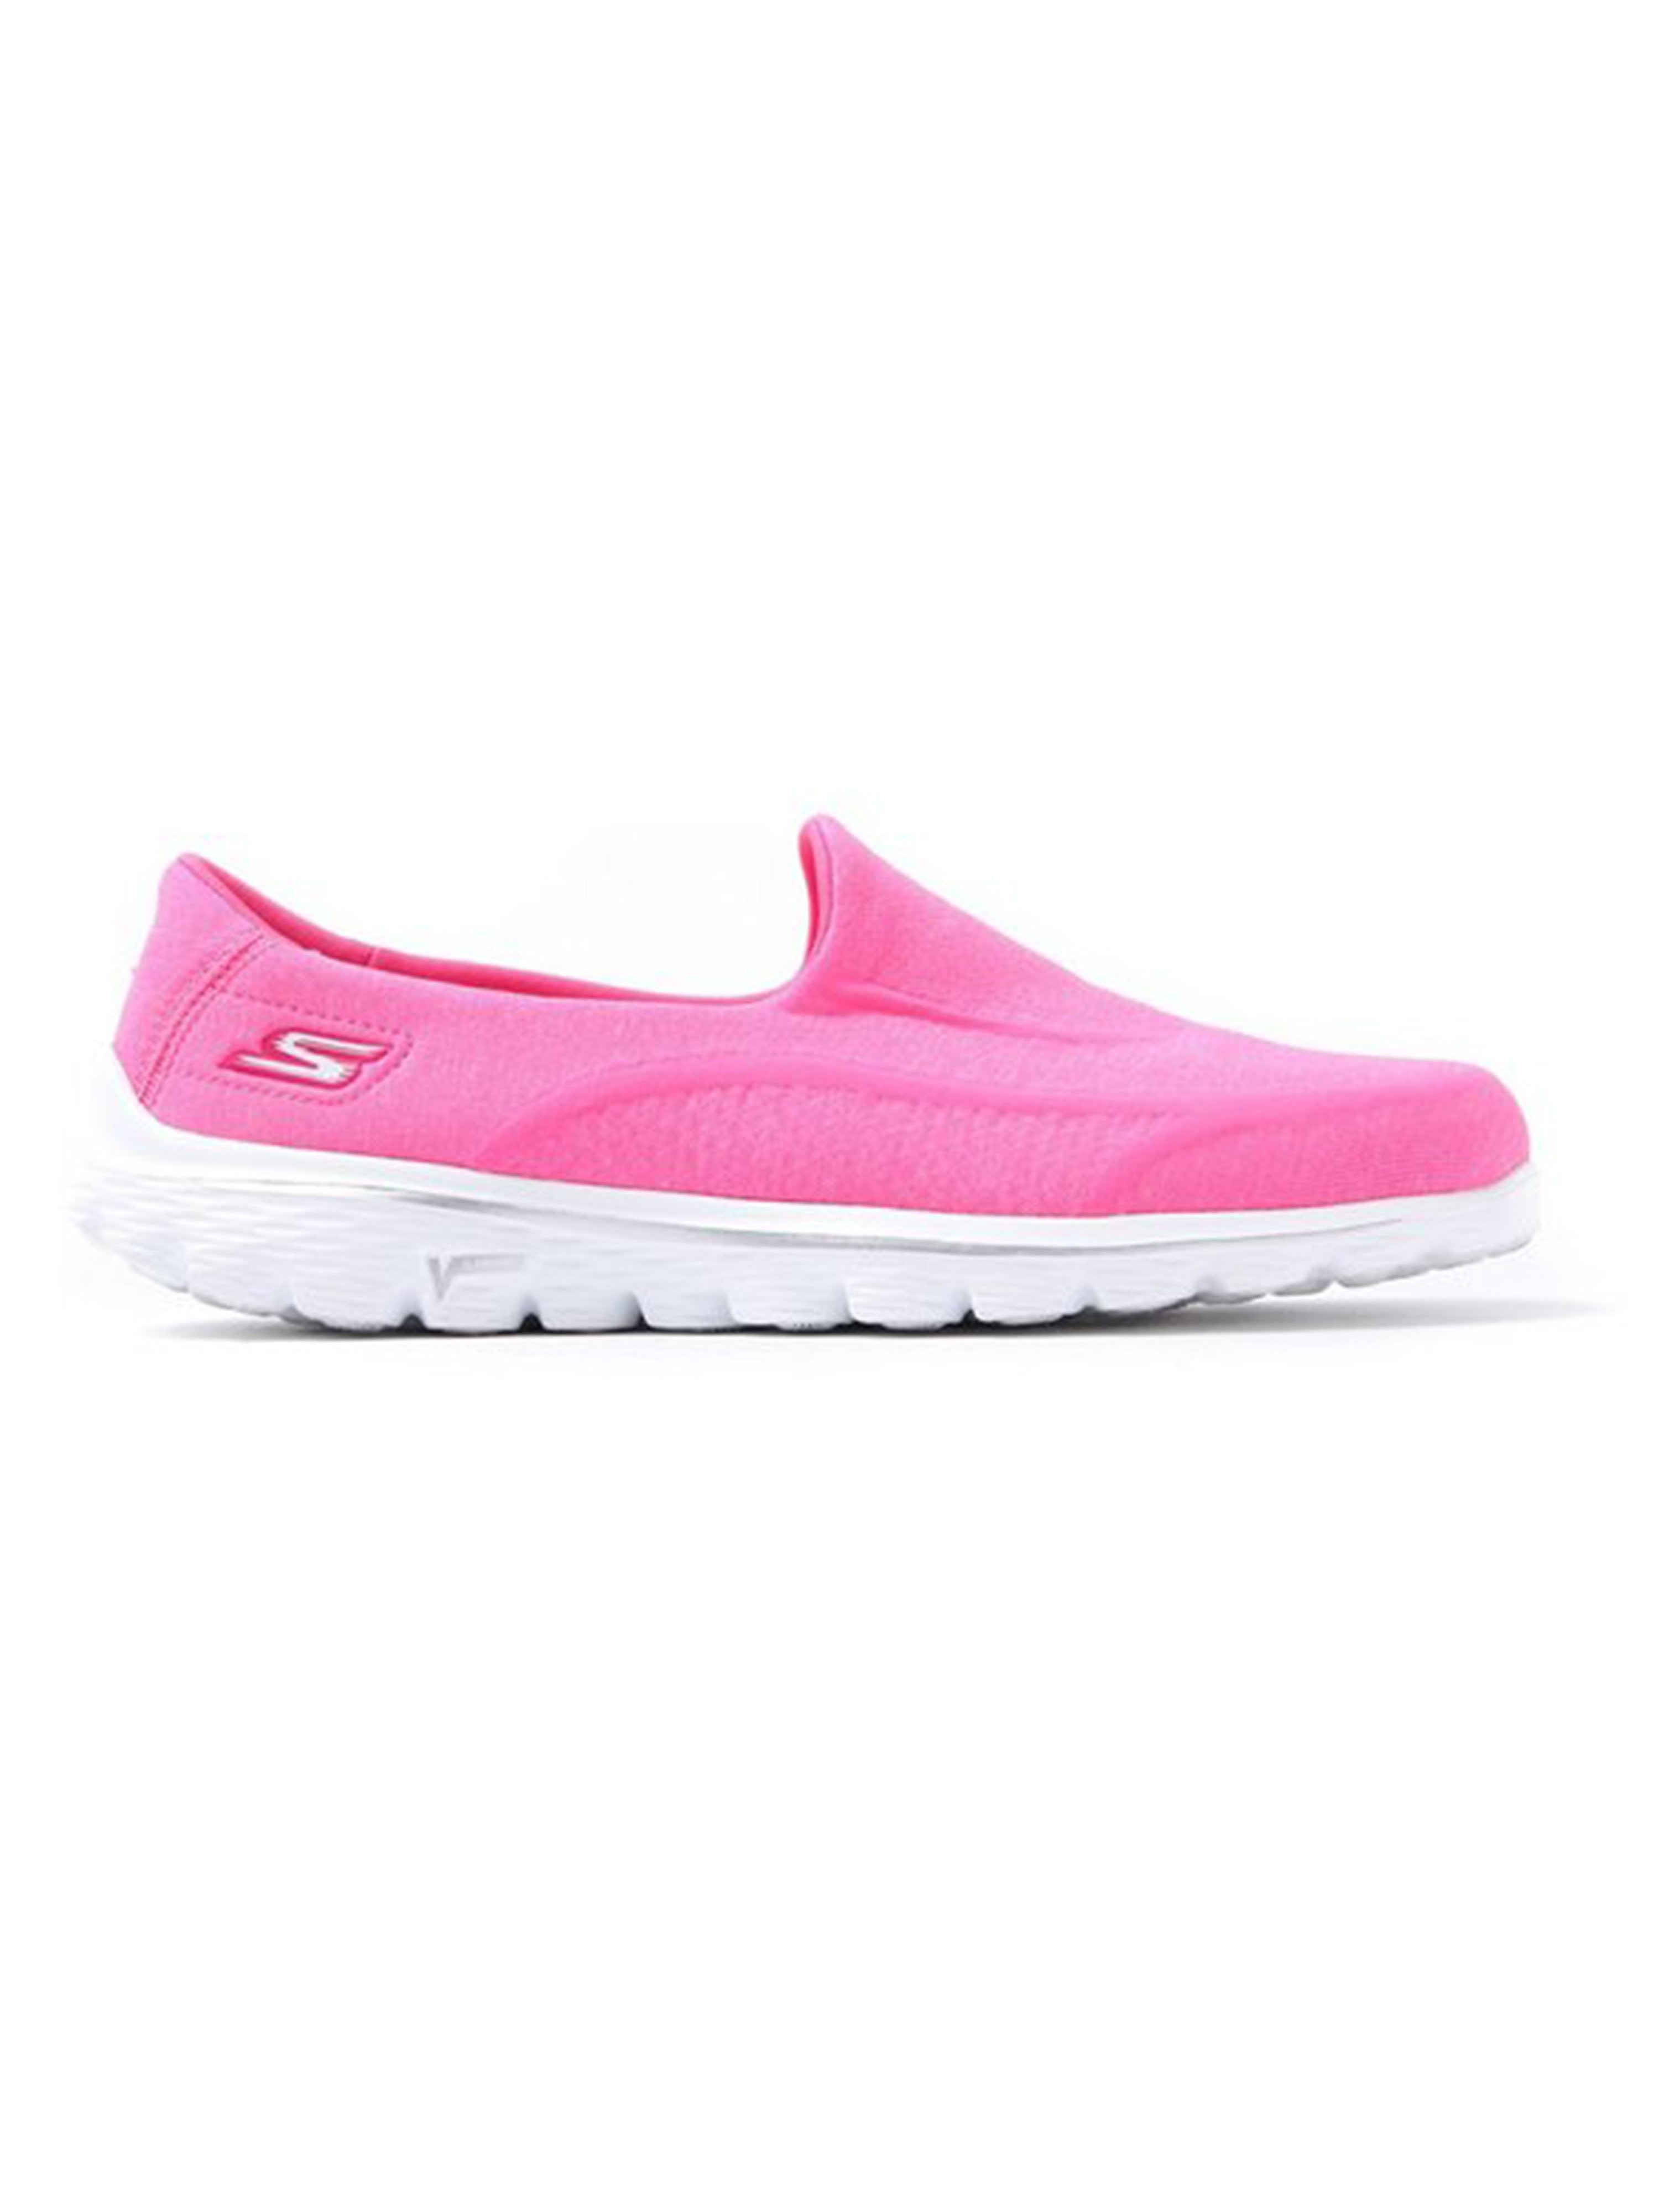 Skechers Women's GO Walk 2 Super Sock Slip On Trainers - Hot Pink